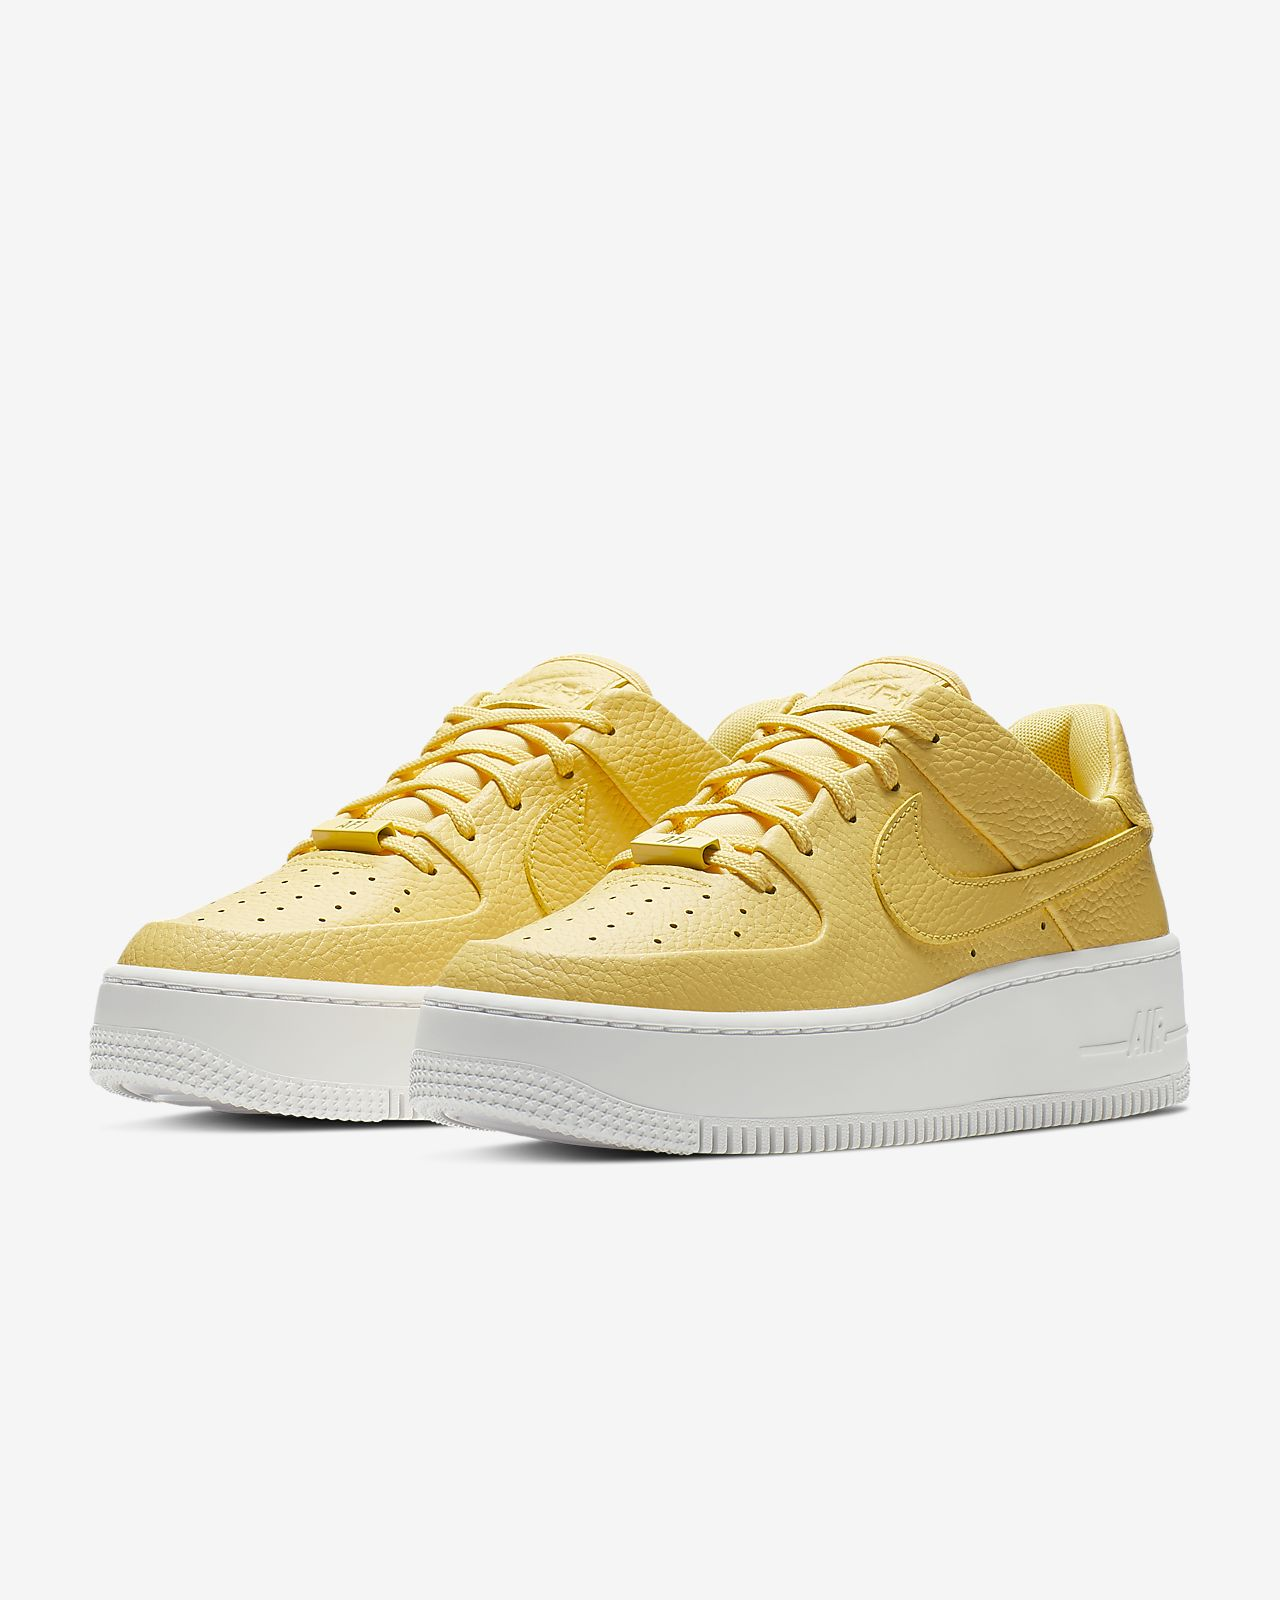 604dab1952 Nike Air Force 1 Sage Low Women's Shoe. Nike.com